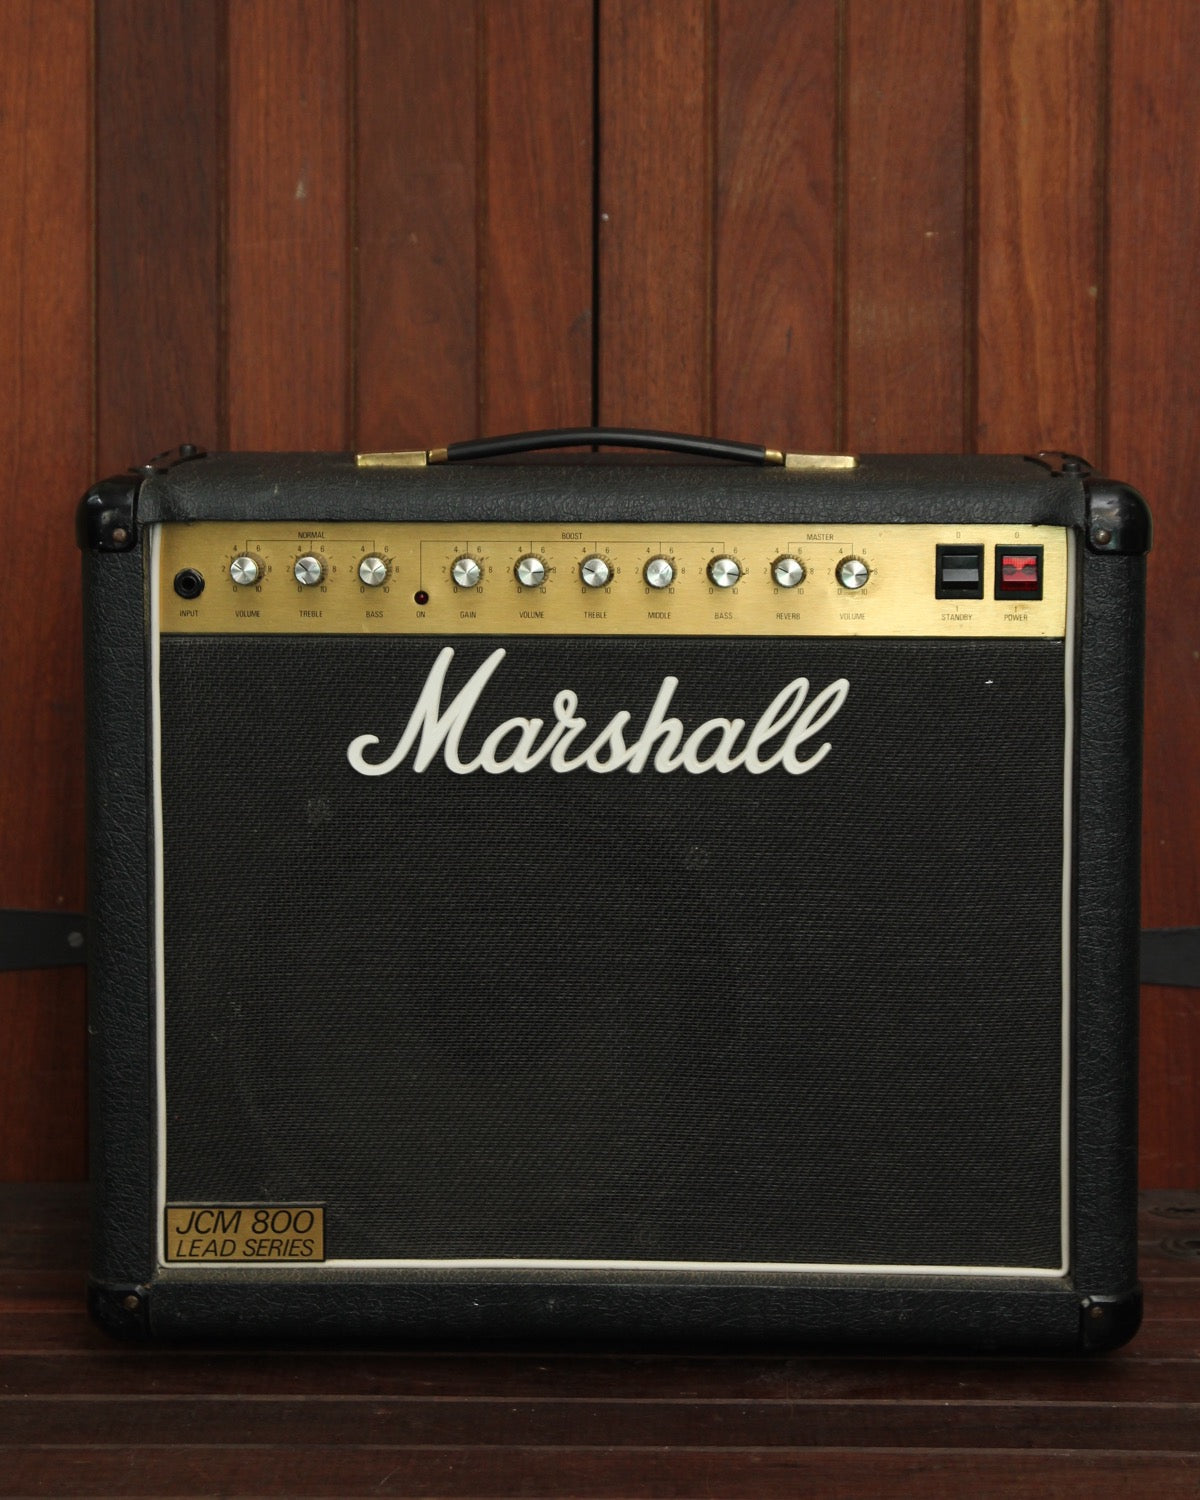 *NEW ARRIVAL* Marshall JCM800 1x12 50w 4210 Combo Pre-Owned